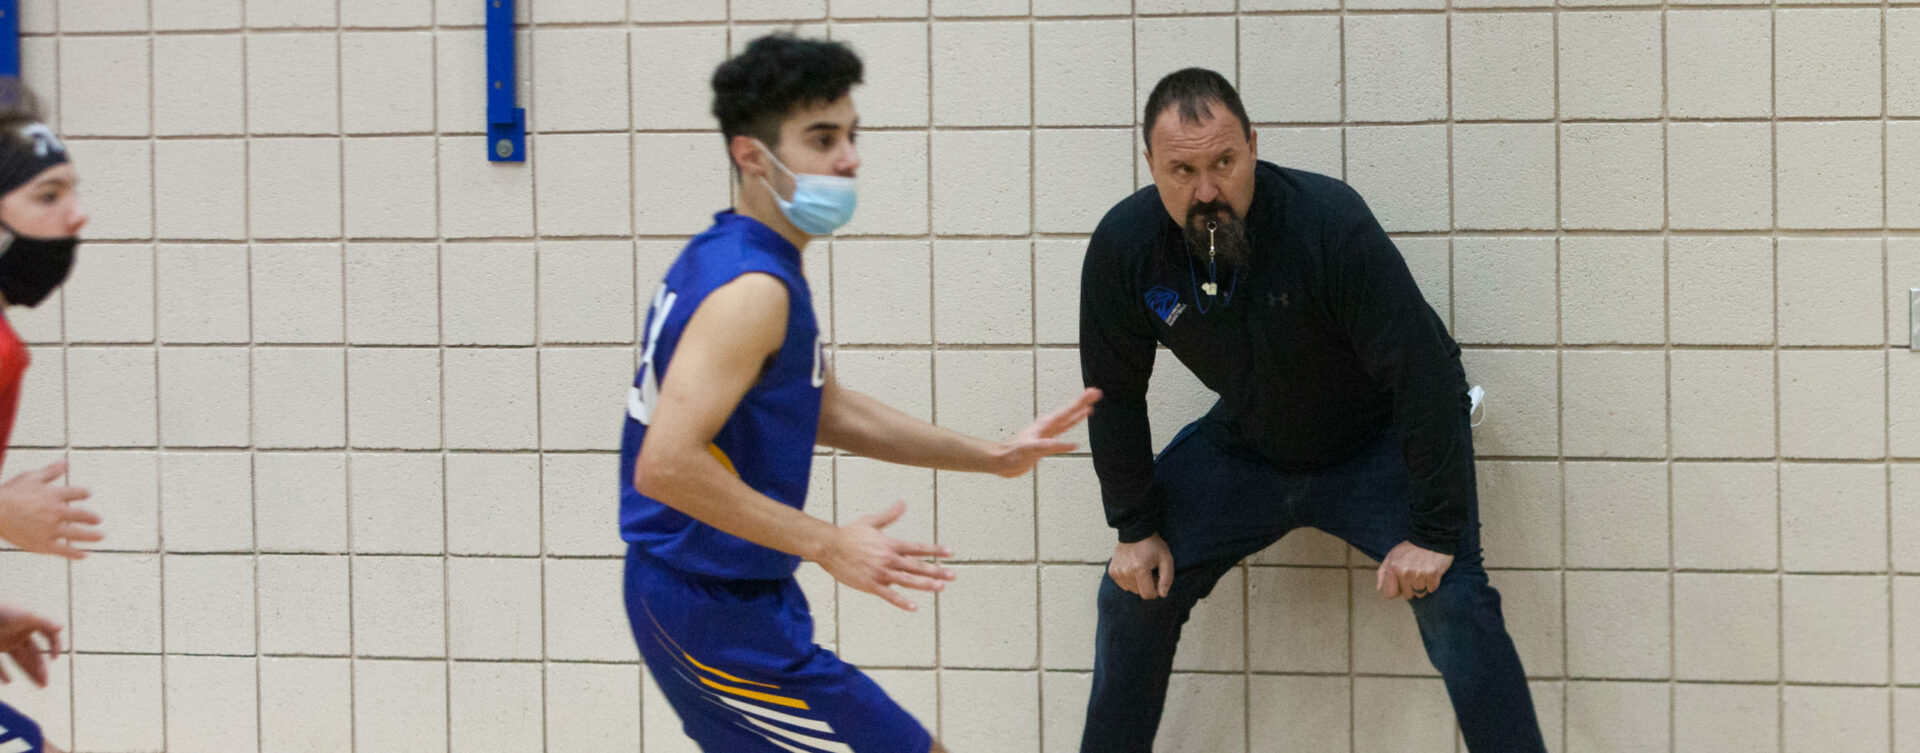 From 2-19 to contender: Fruitport Calvary Christian boys, under new coach Brad Richards, are in the hunt for a district title